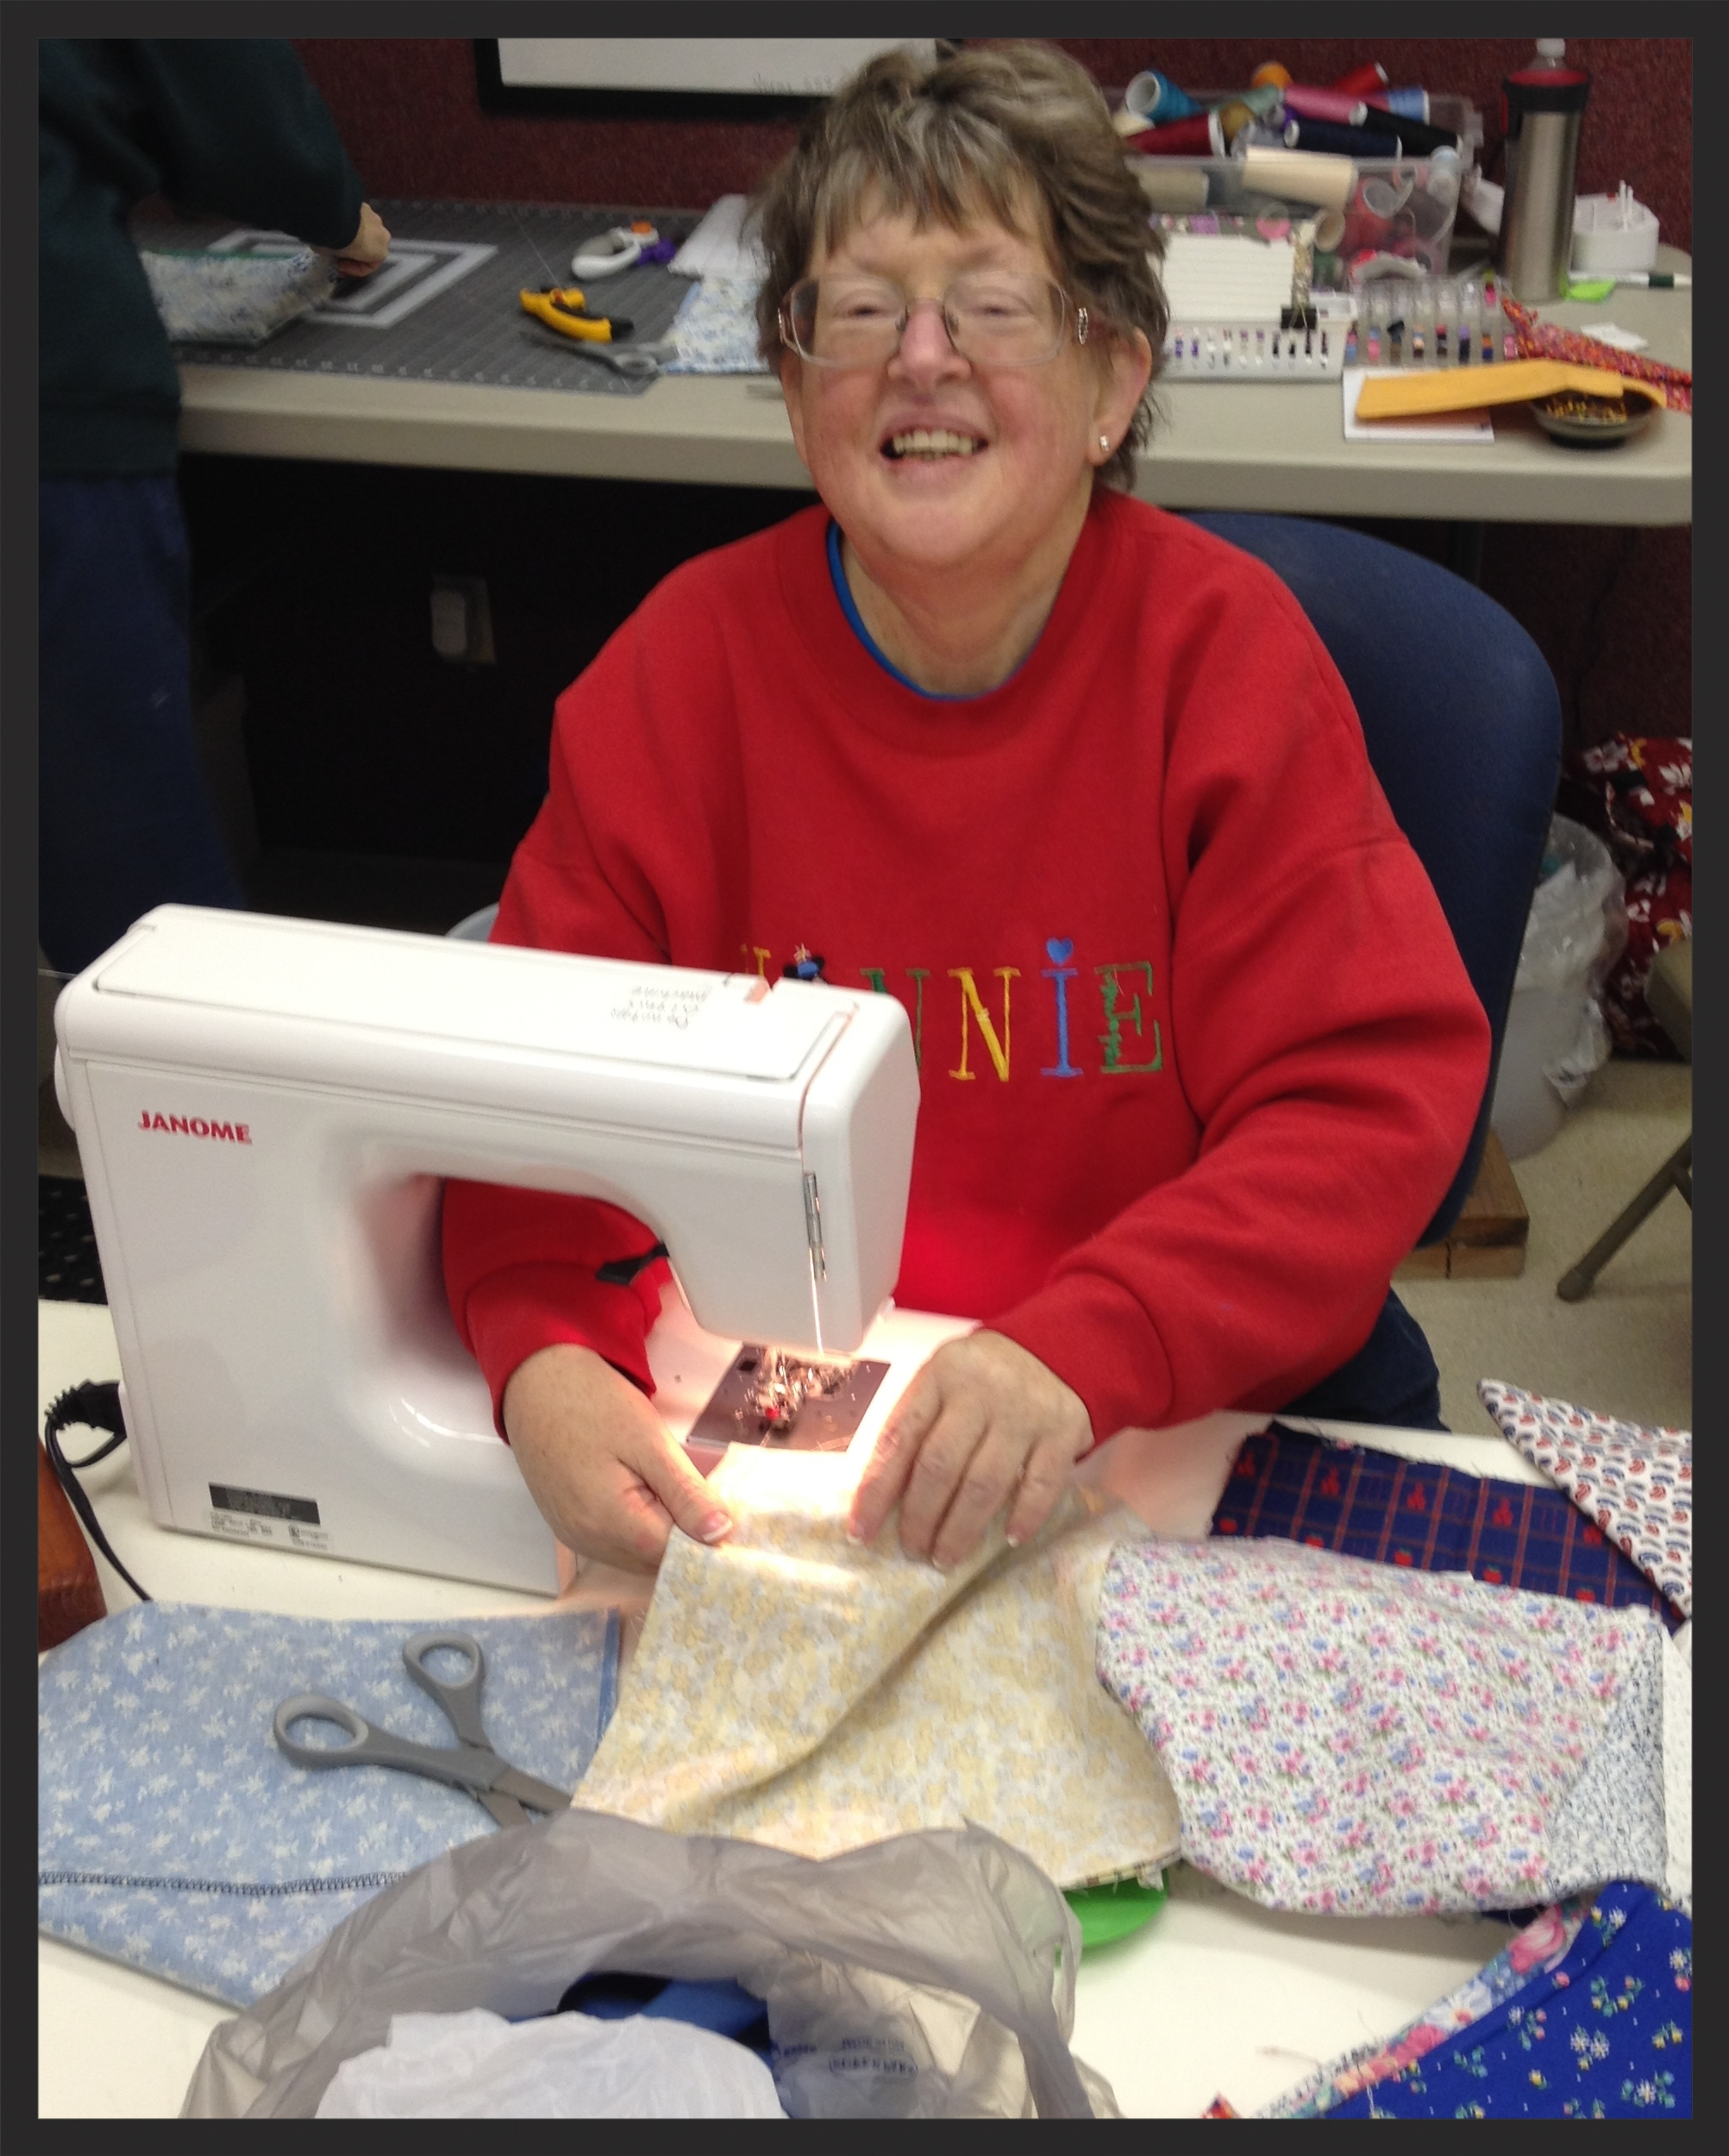 Robin Smith has joined YES! at Gleanings for nine consecutive years. She absolutely thrives in the quilt room!